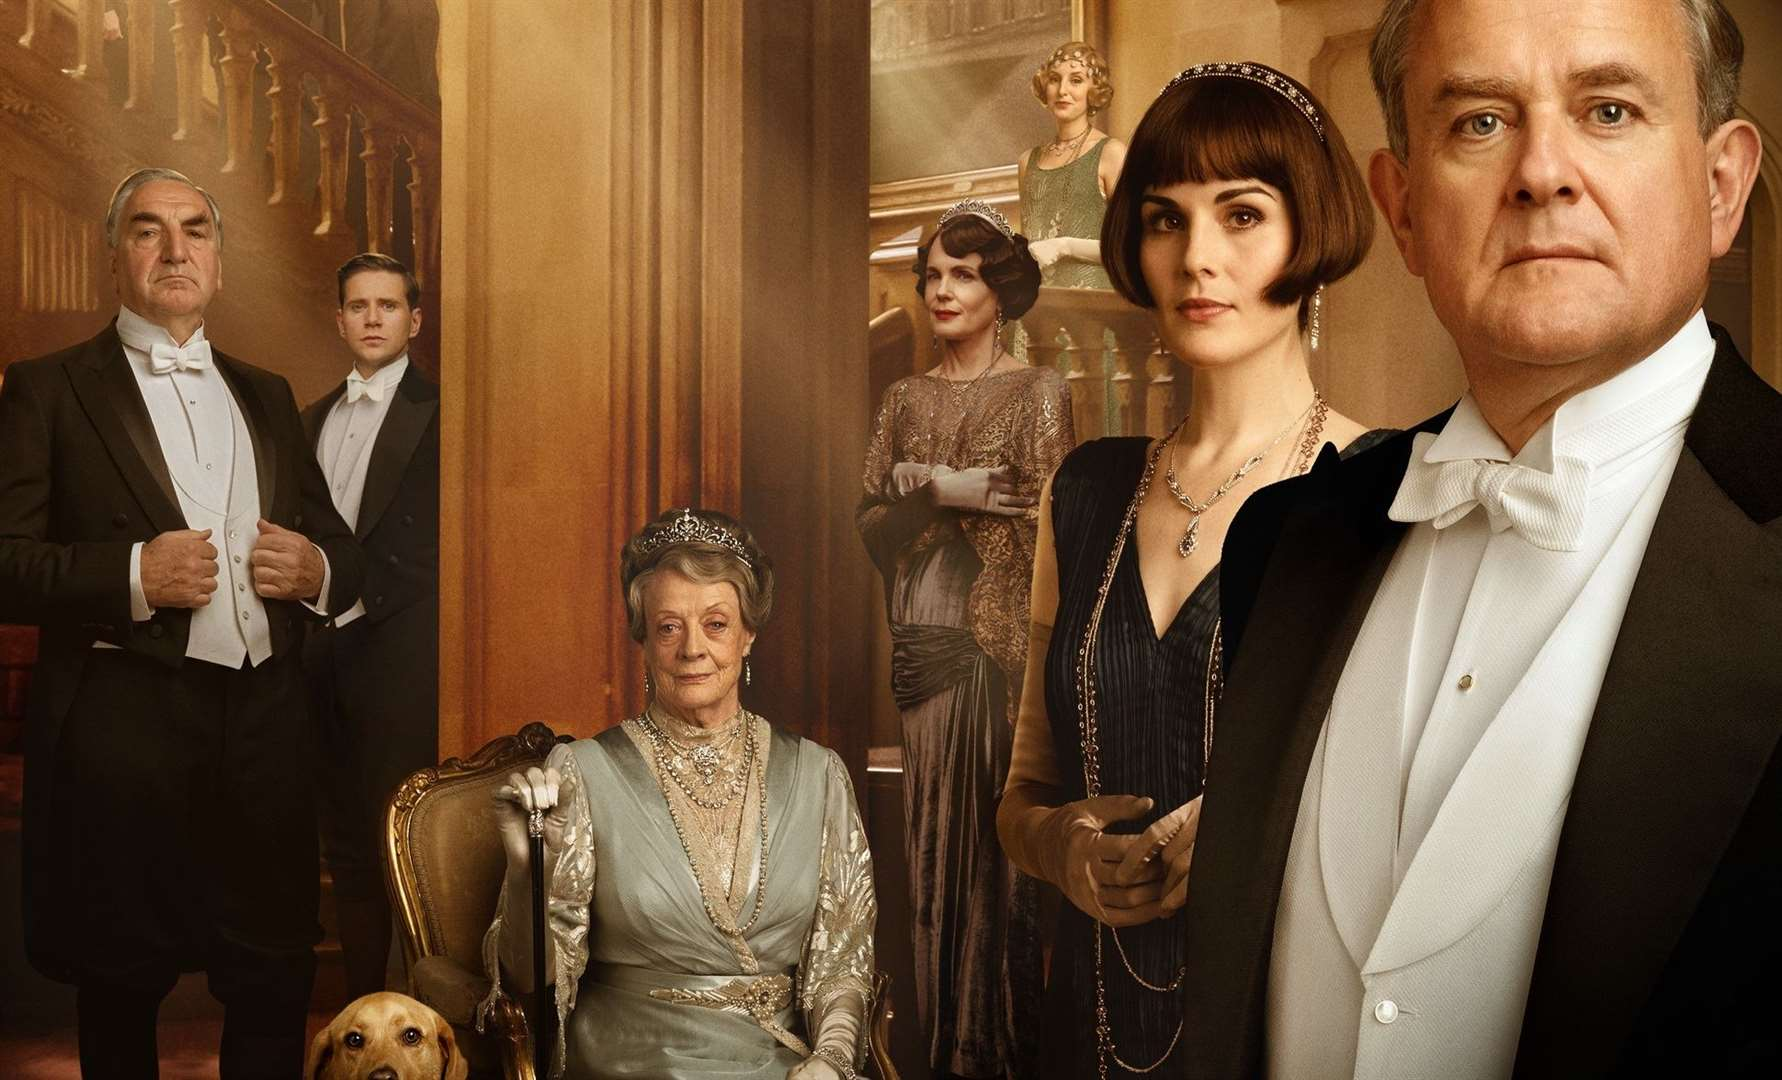 Mrs Mooney's cousin, Julian Fellowes, is the creator of the award winning ITV show Downton Abbey.